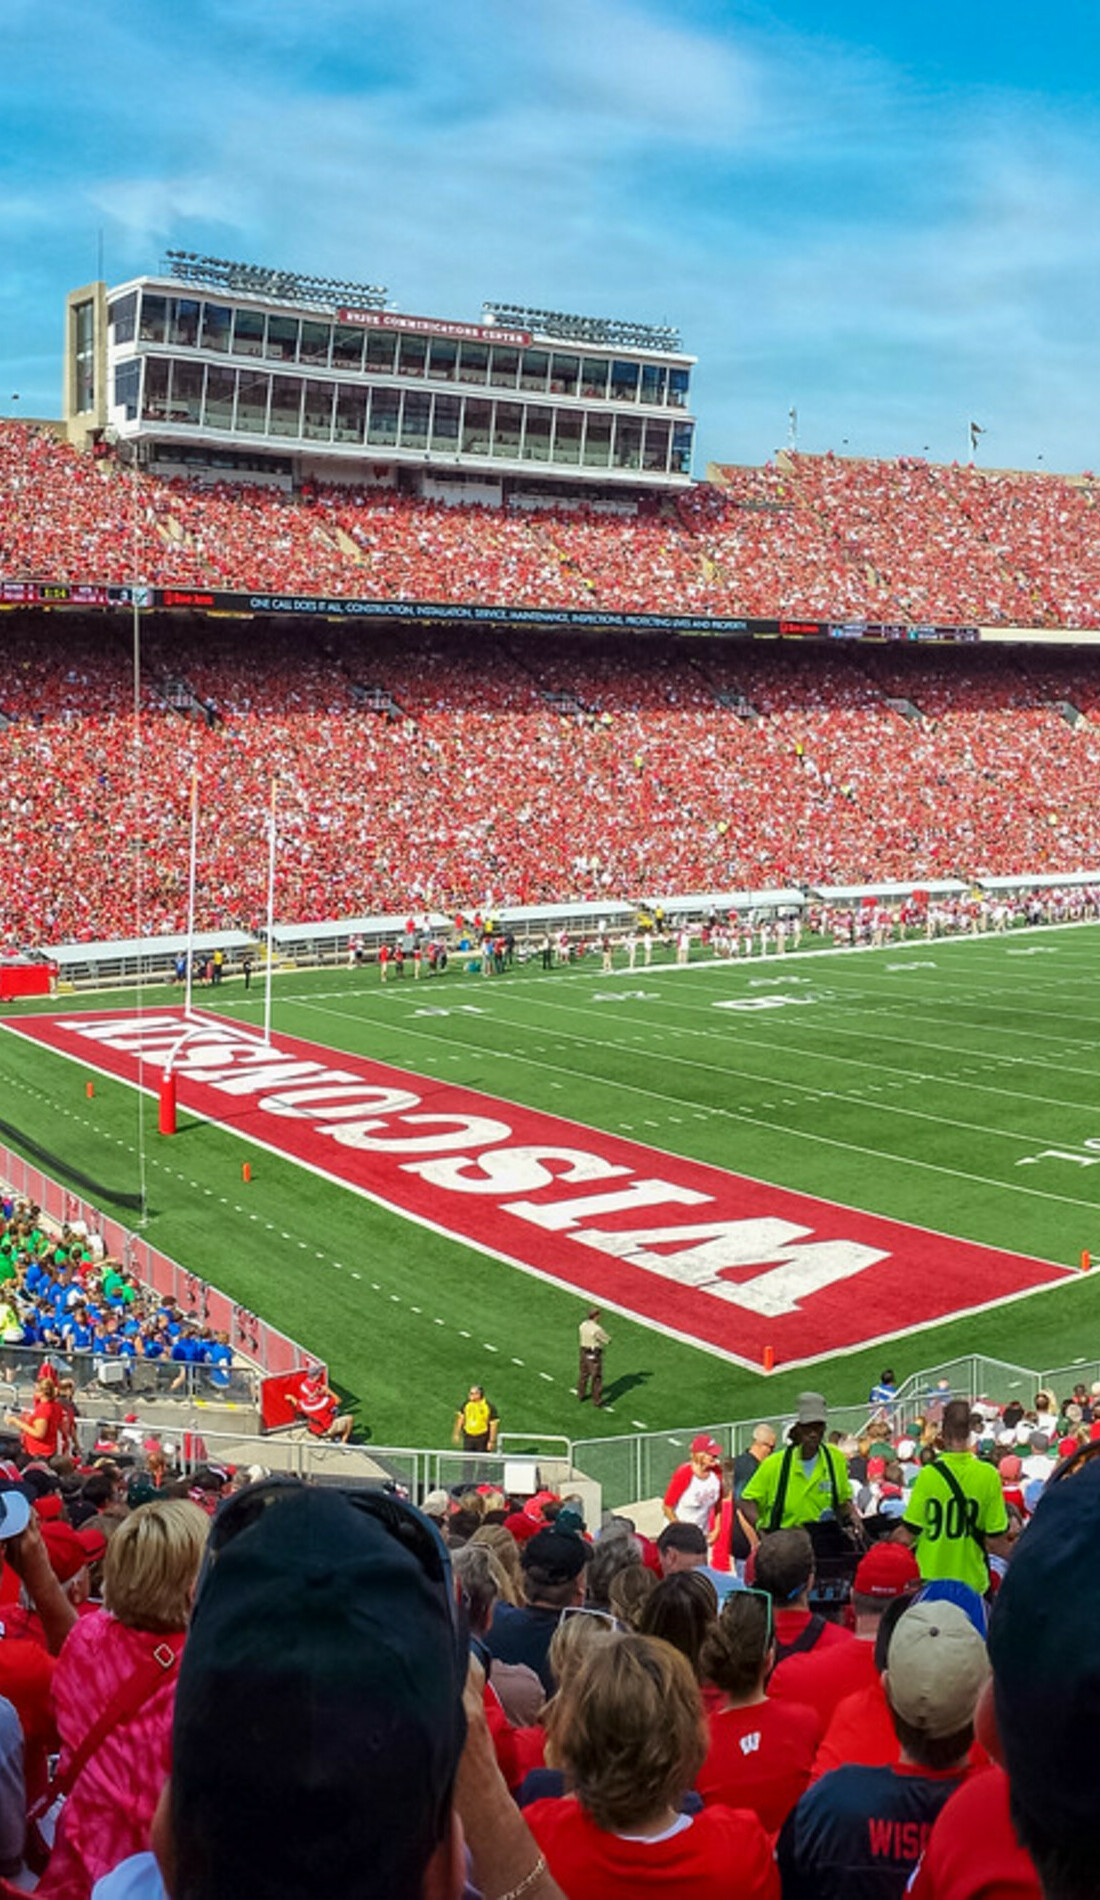 A Wisconsin Badgers Football live event